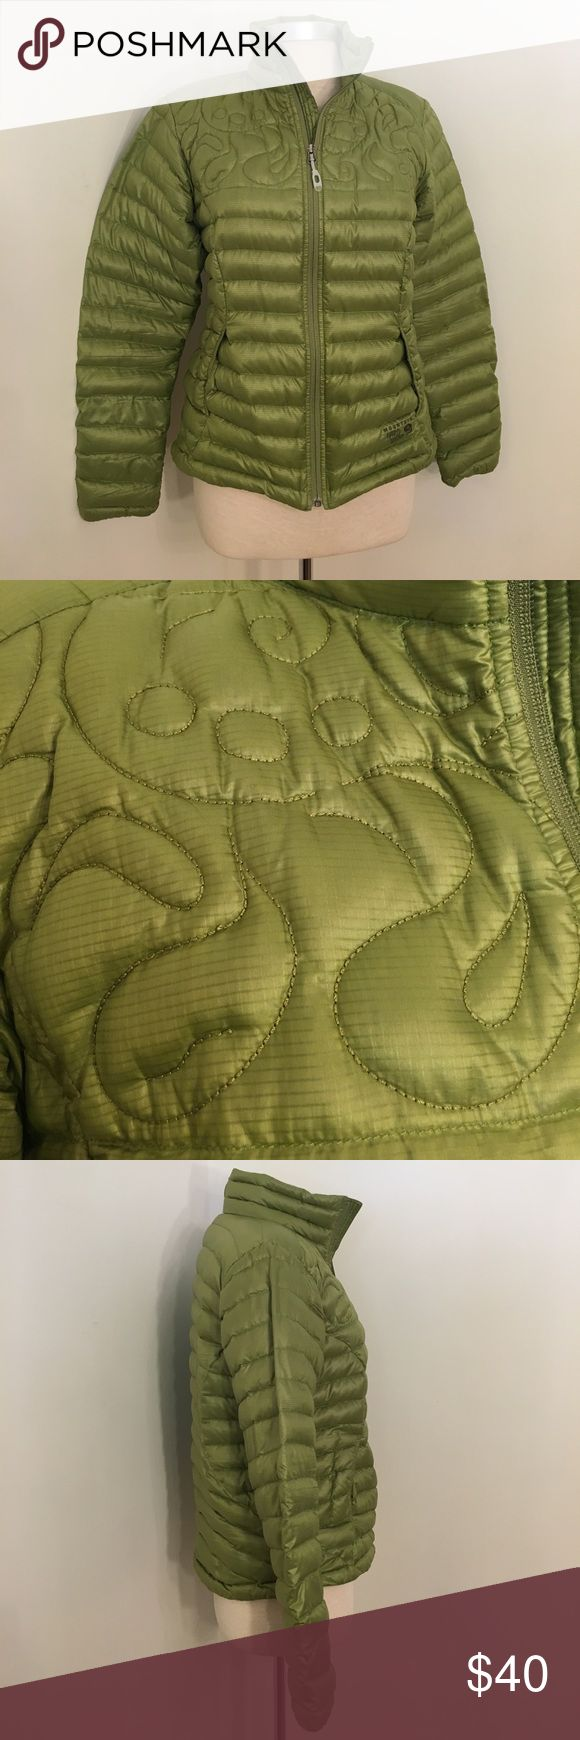 """Mountain Hardwear Green Puffer Jacket Light, weight yet warm jacket. Filled with 90% down, 10% feathers. Comes with stuff sack that the whole jacket will fit inside. Draw string to cinch at hip area. Gently used condition. Bust: 40"""", Waist: 38, Hips: 40"""", Length: 23"""" Mountain Hardwear Jackets & Coats Puffers"""